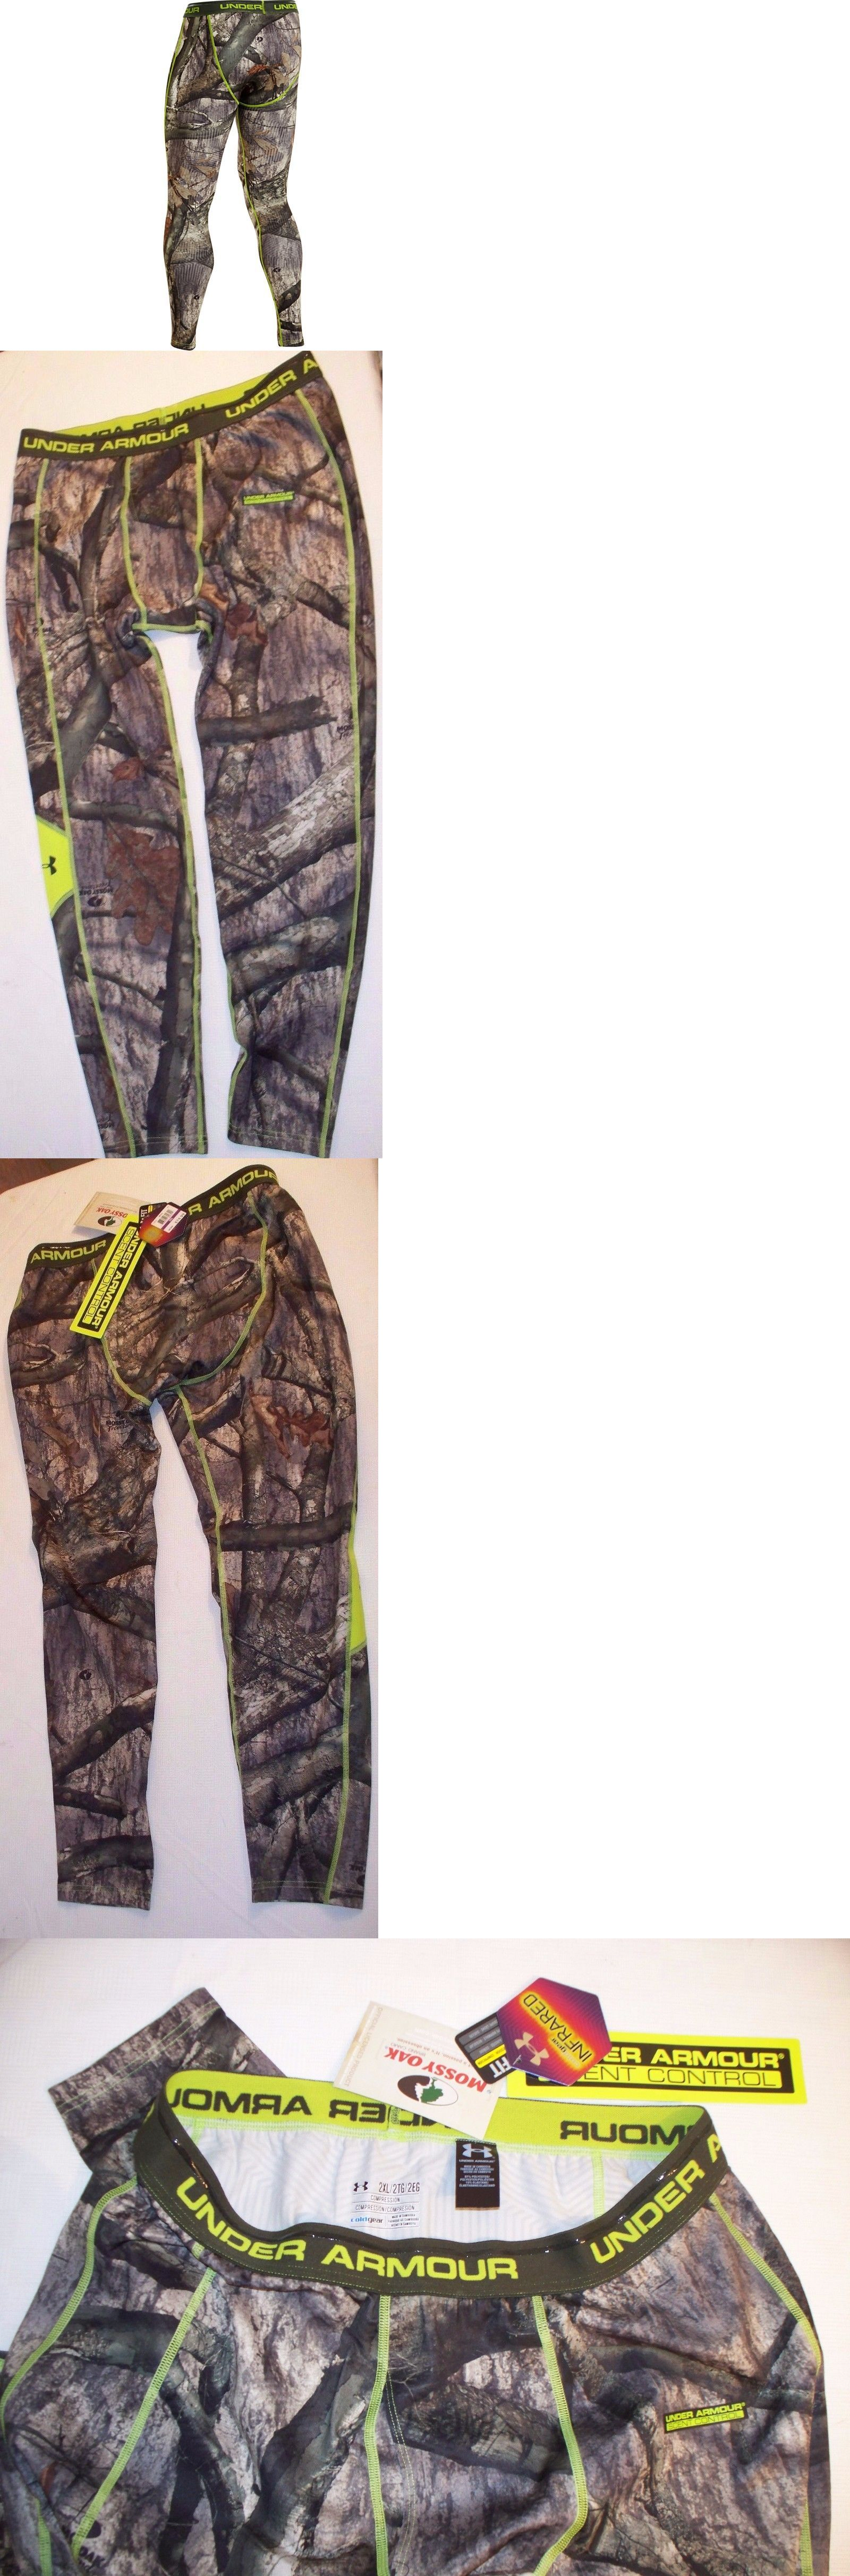 8c3a81d1098a0 Base Layers 177867: Under Armour Coldgear® Infrared Scent Control Evo  Hunting Leggins Men S Xxl -> BUY IT NOW ONLY: $34.99 on #eBay #layers #under  #armour ...